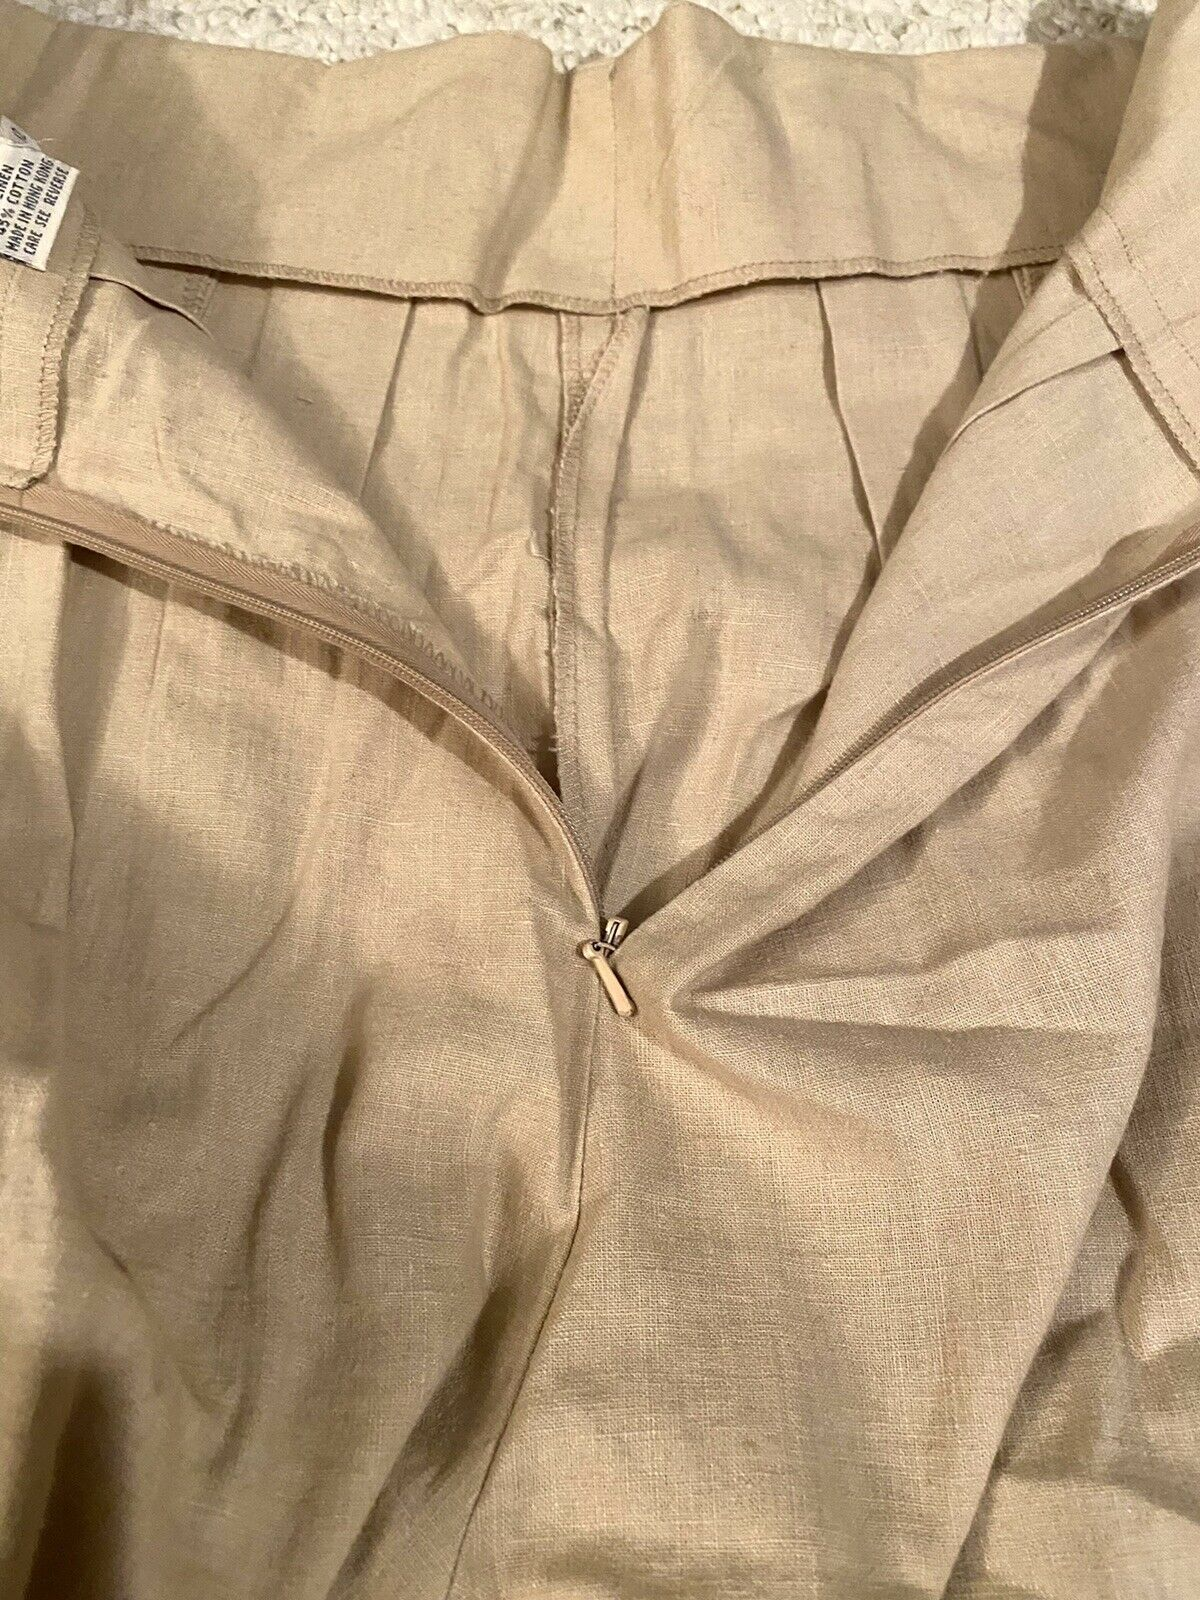 MARIE ST. CLAIRE Vintage Beige PLEATED Skort With… - image 6